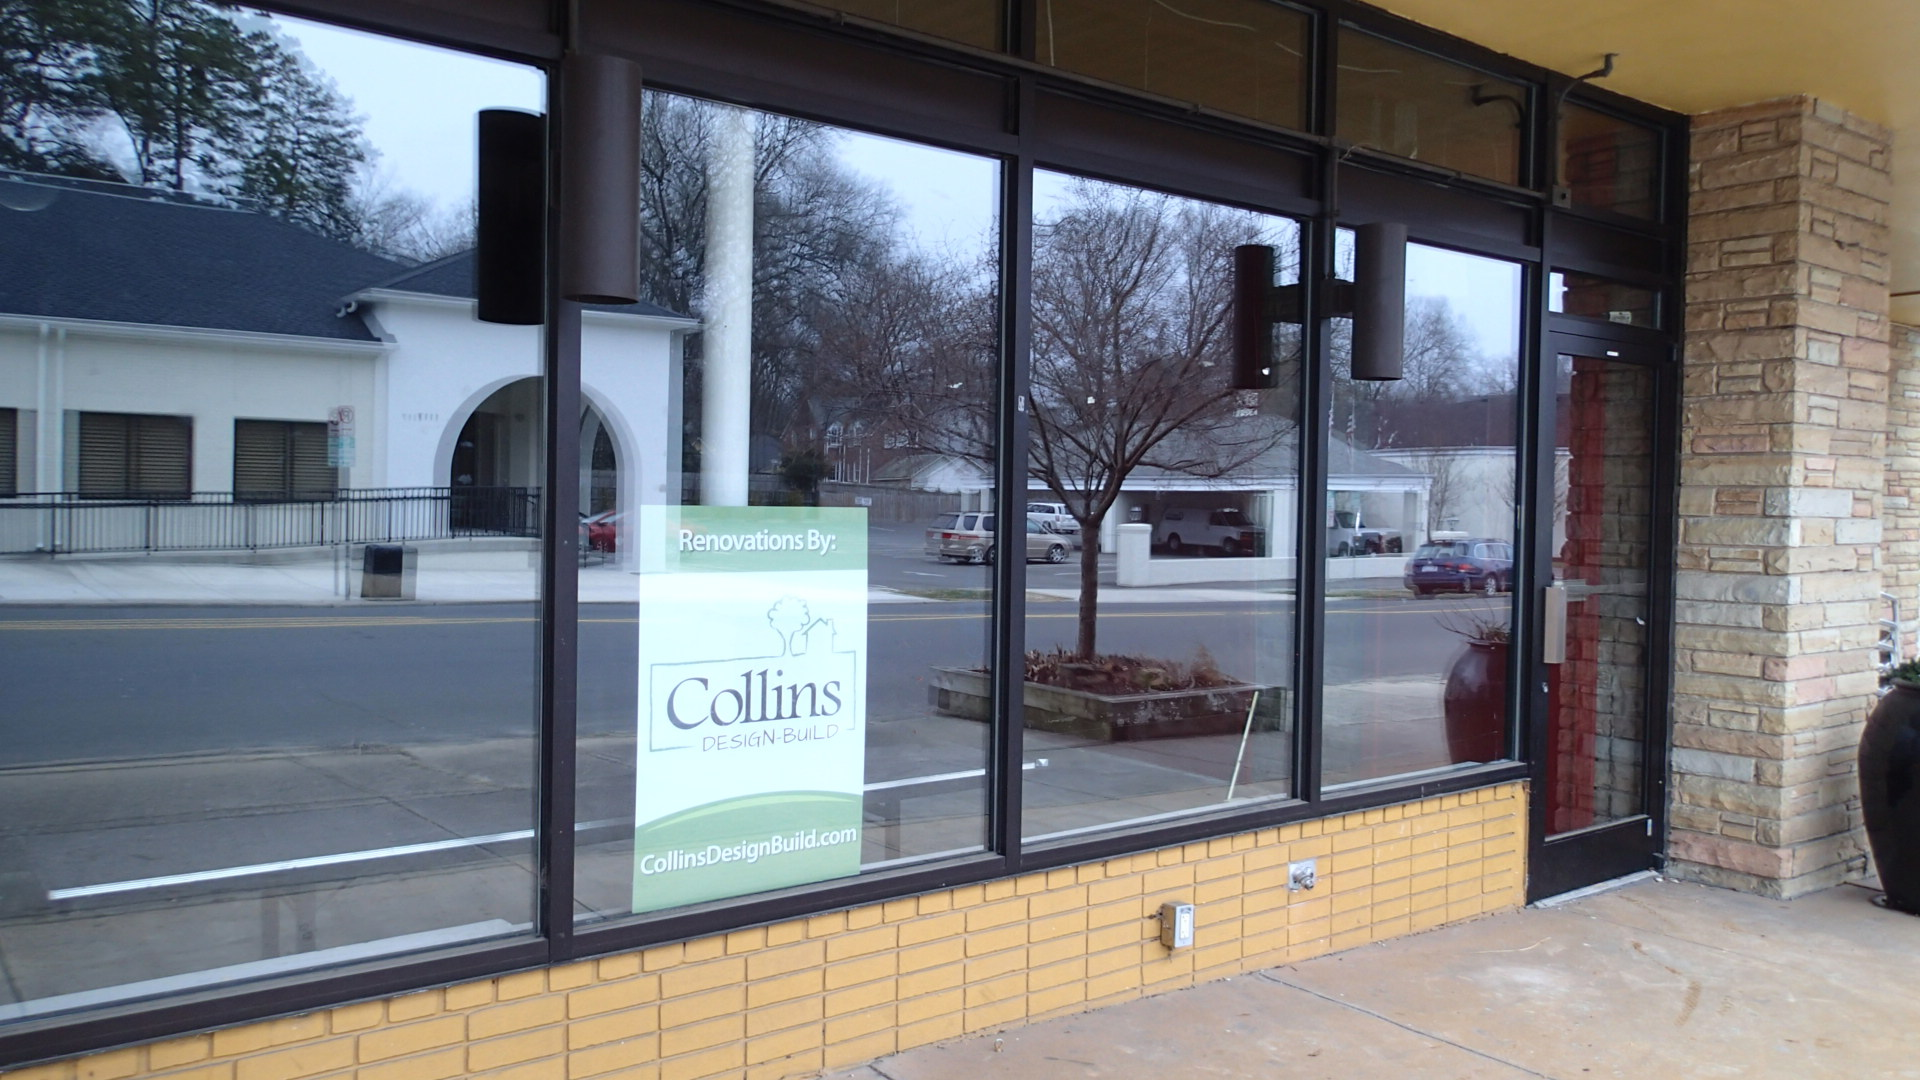 Hillsborough nc real estate agent collins design reatly for Collins design build